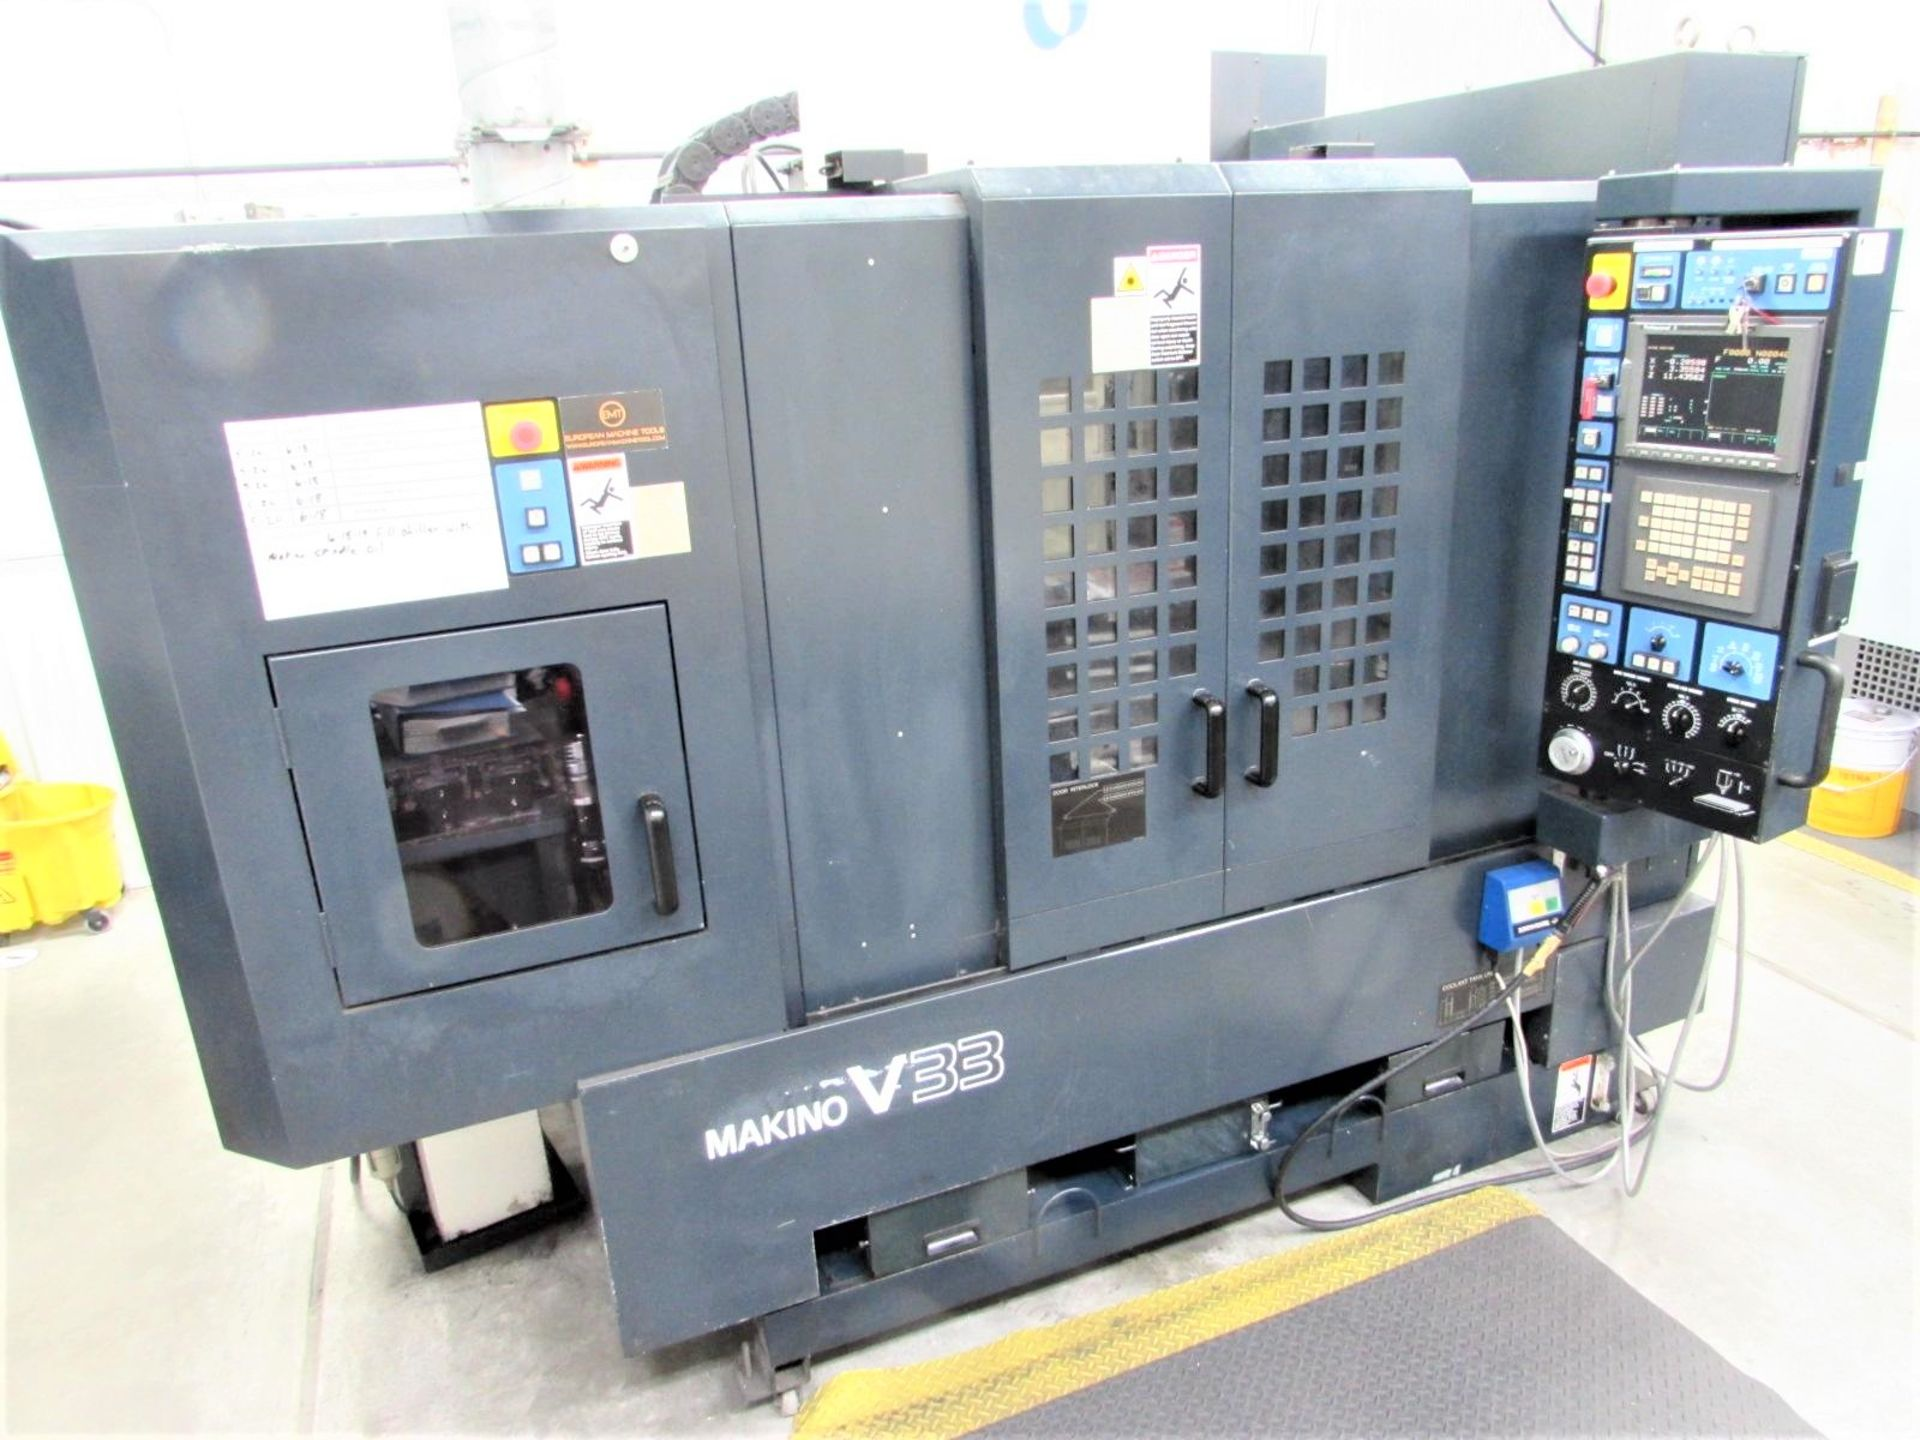 Lot 39 - Makino V33 High Speed CNC Vertical Machining Center, 30k RPM Spindle, S/N 1034, New 2003